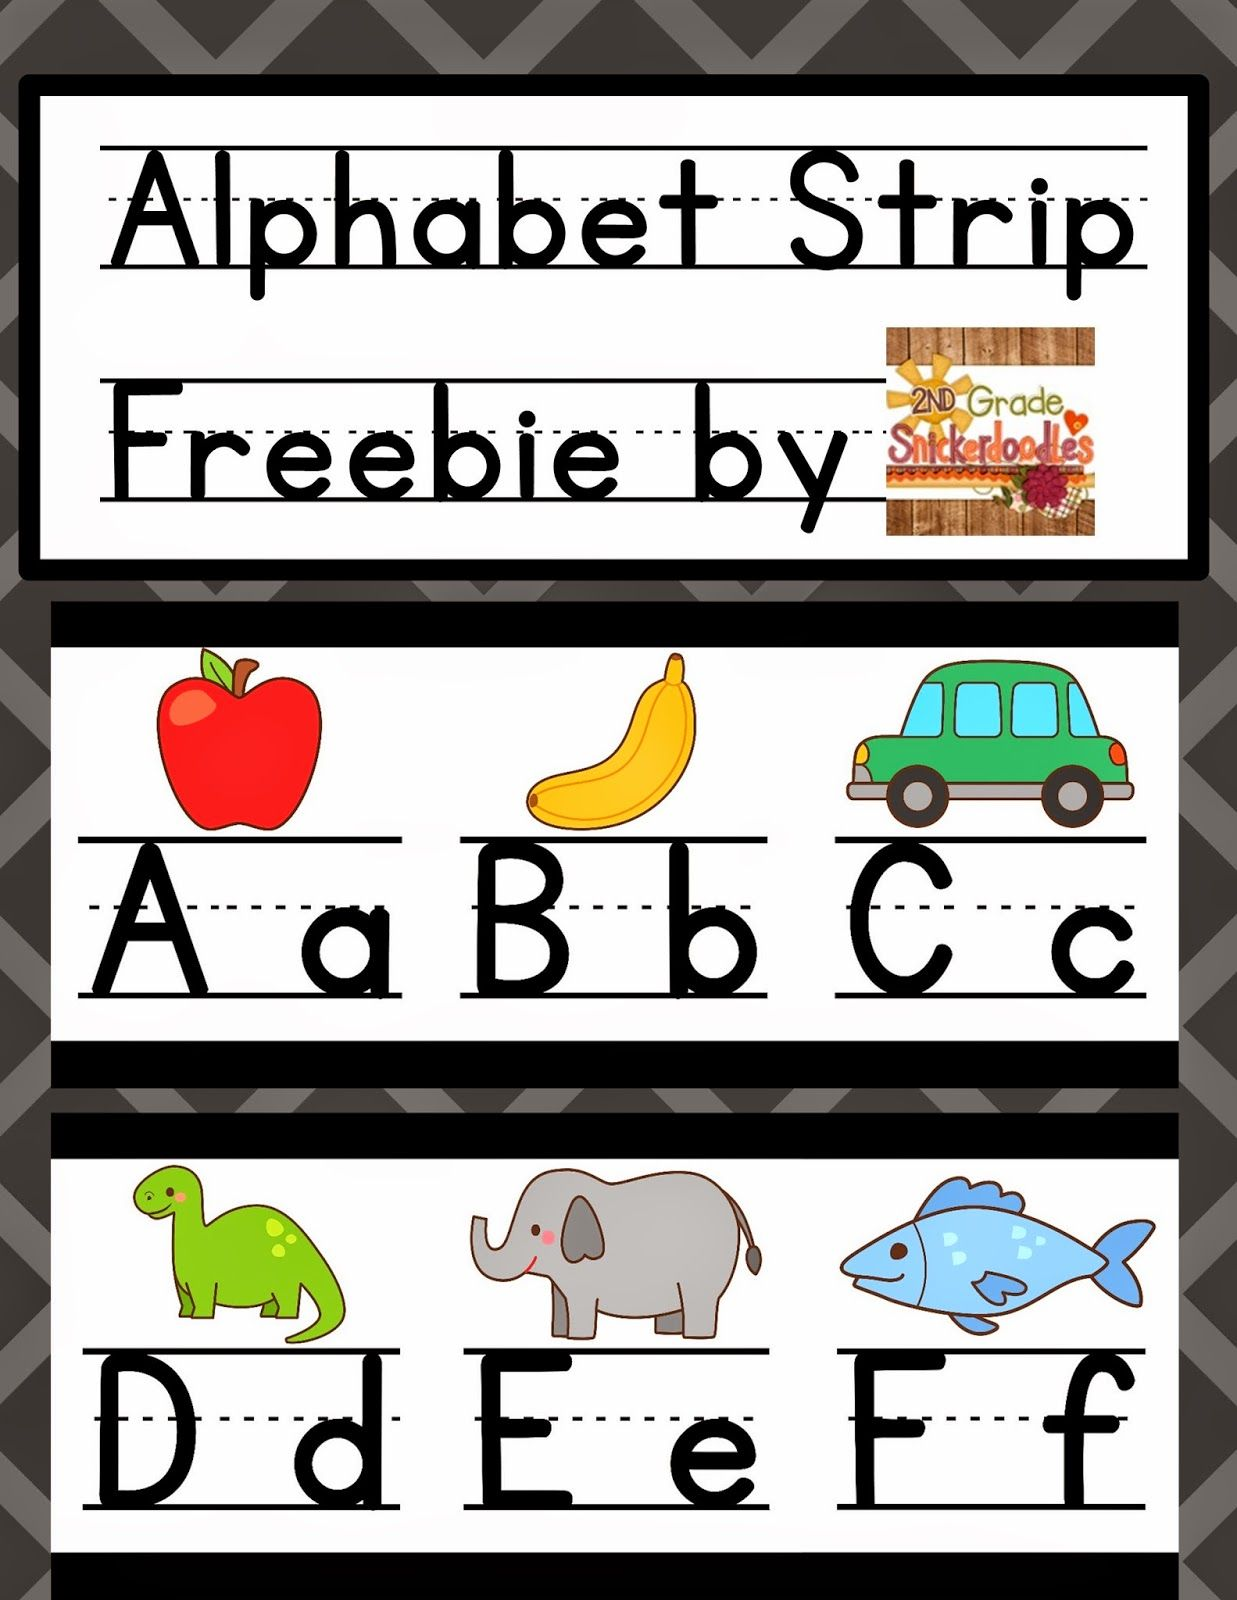 2nd Grade Snickerdoodles Alphabet Strip Posters FREEBIE